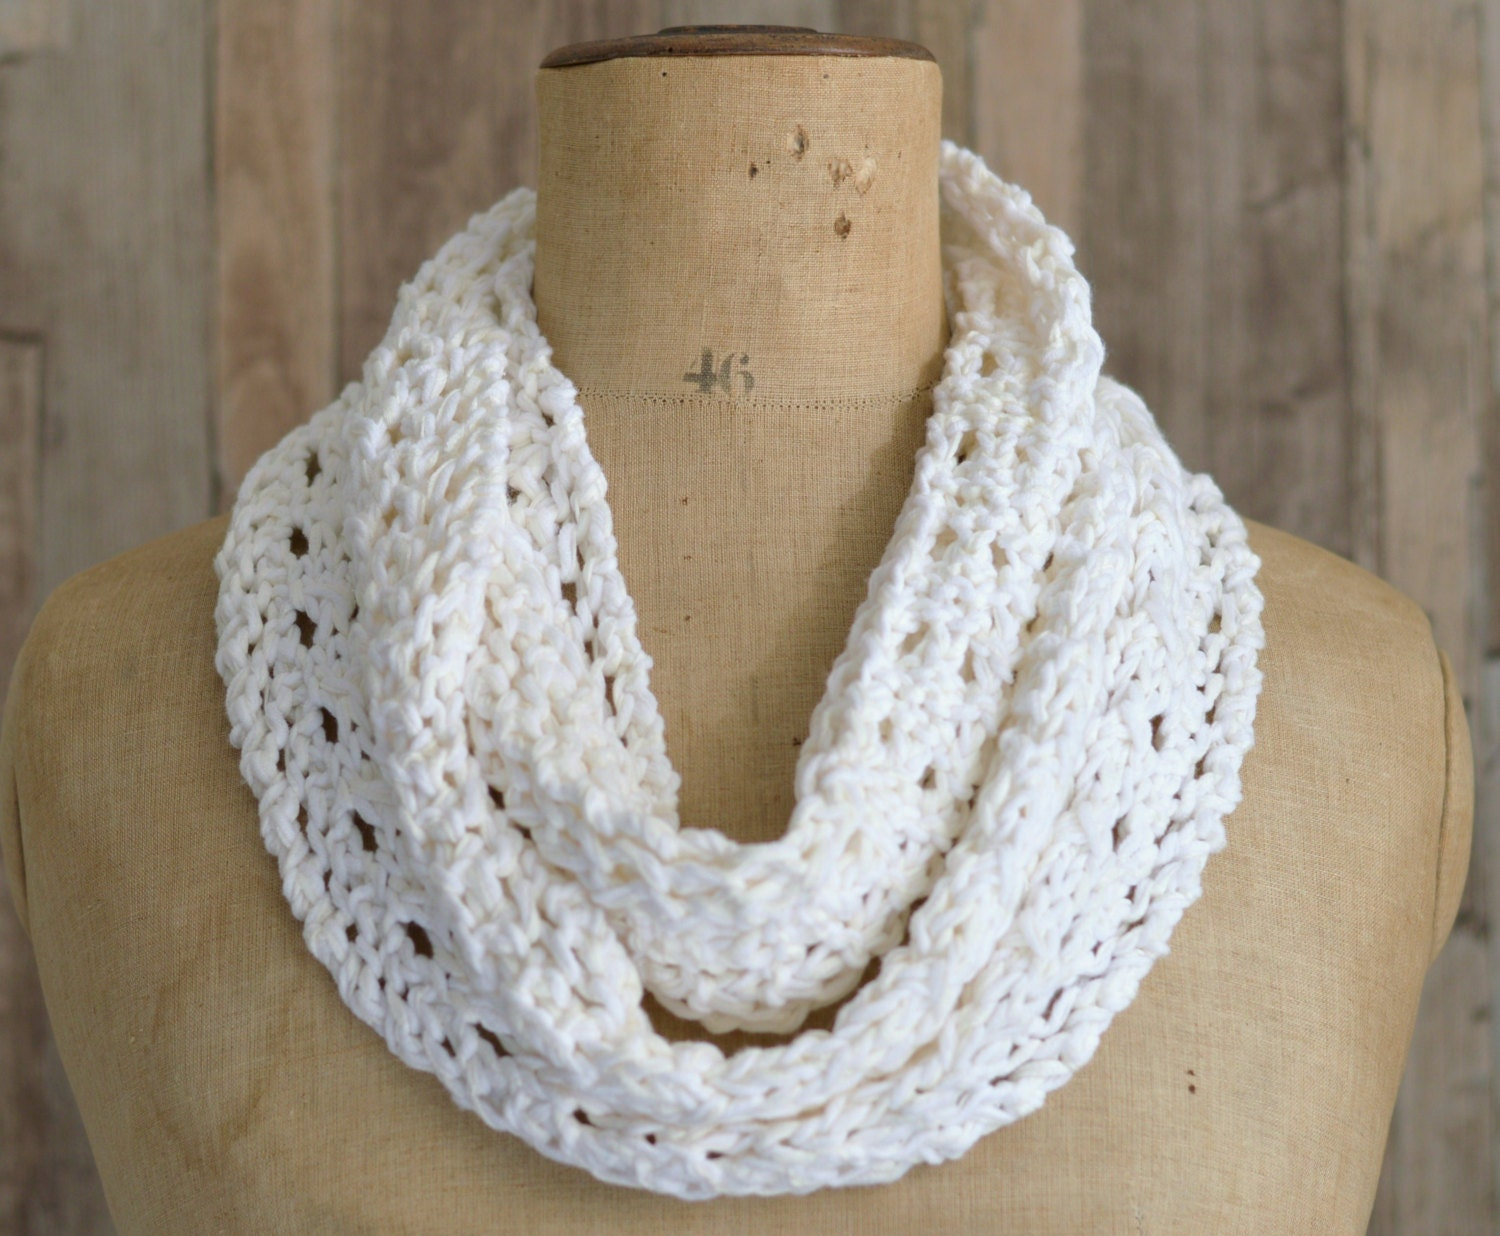 Knitting Scarf Patterns Infinity Scarf : Knitting pattern lace scarf simple knit infinity